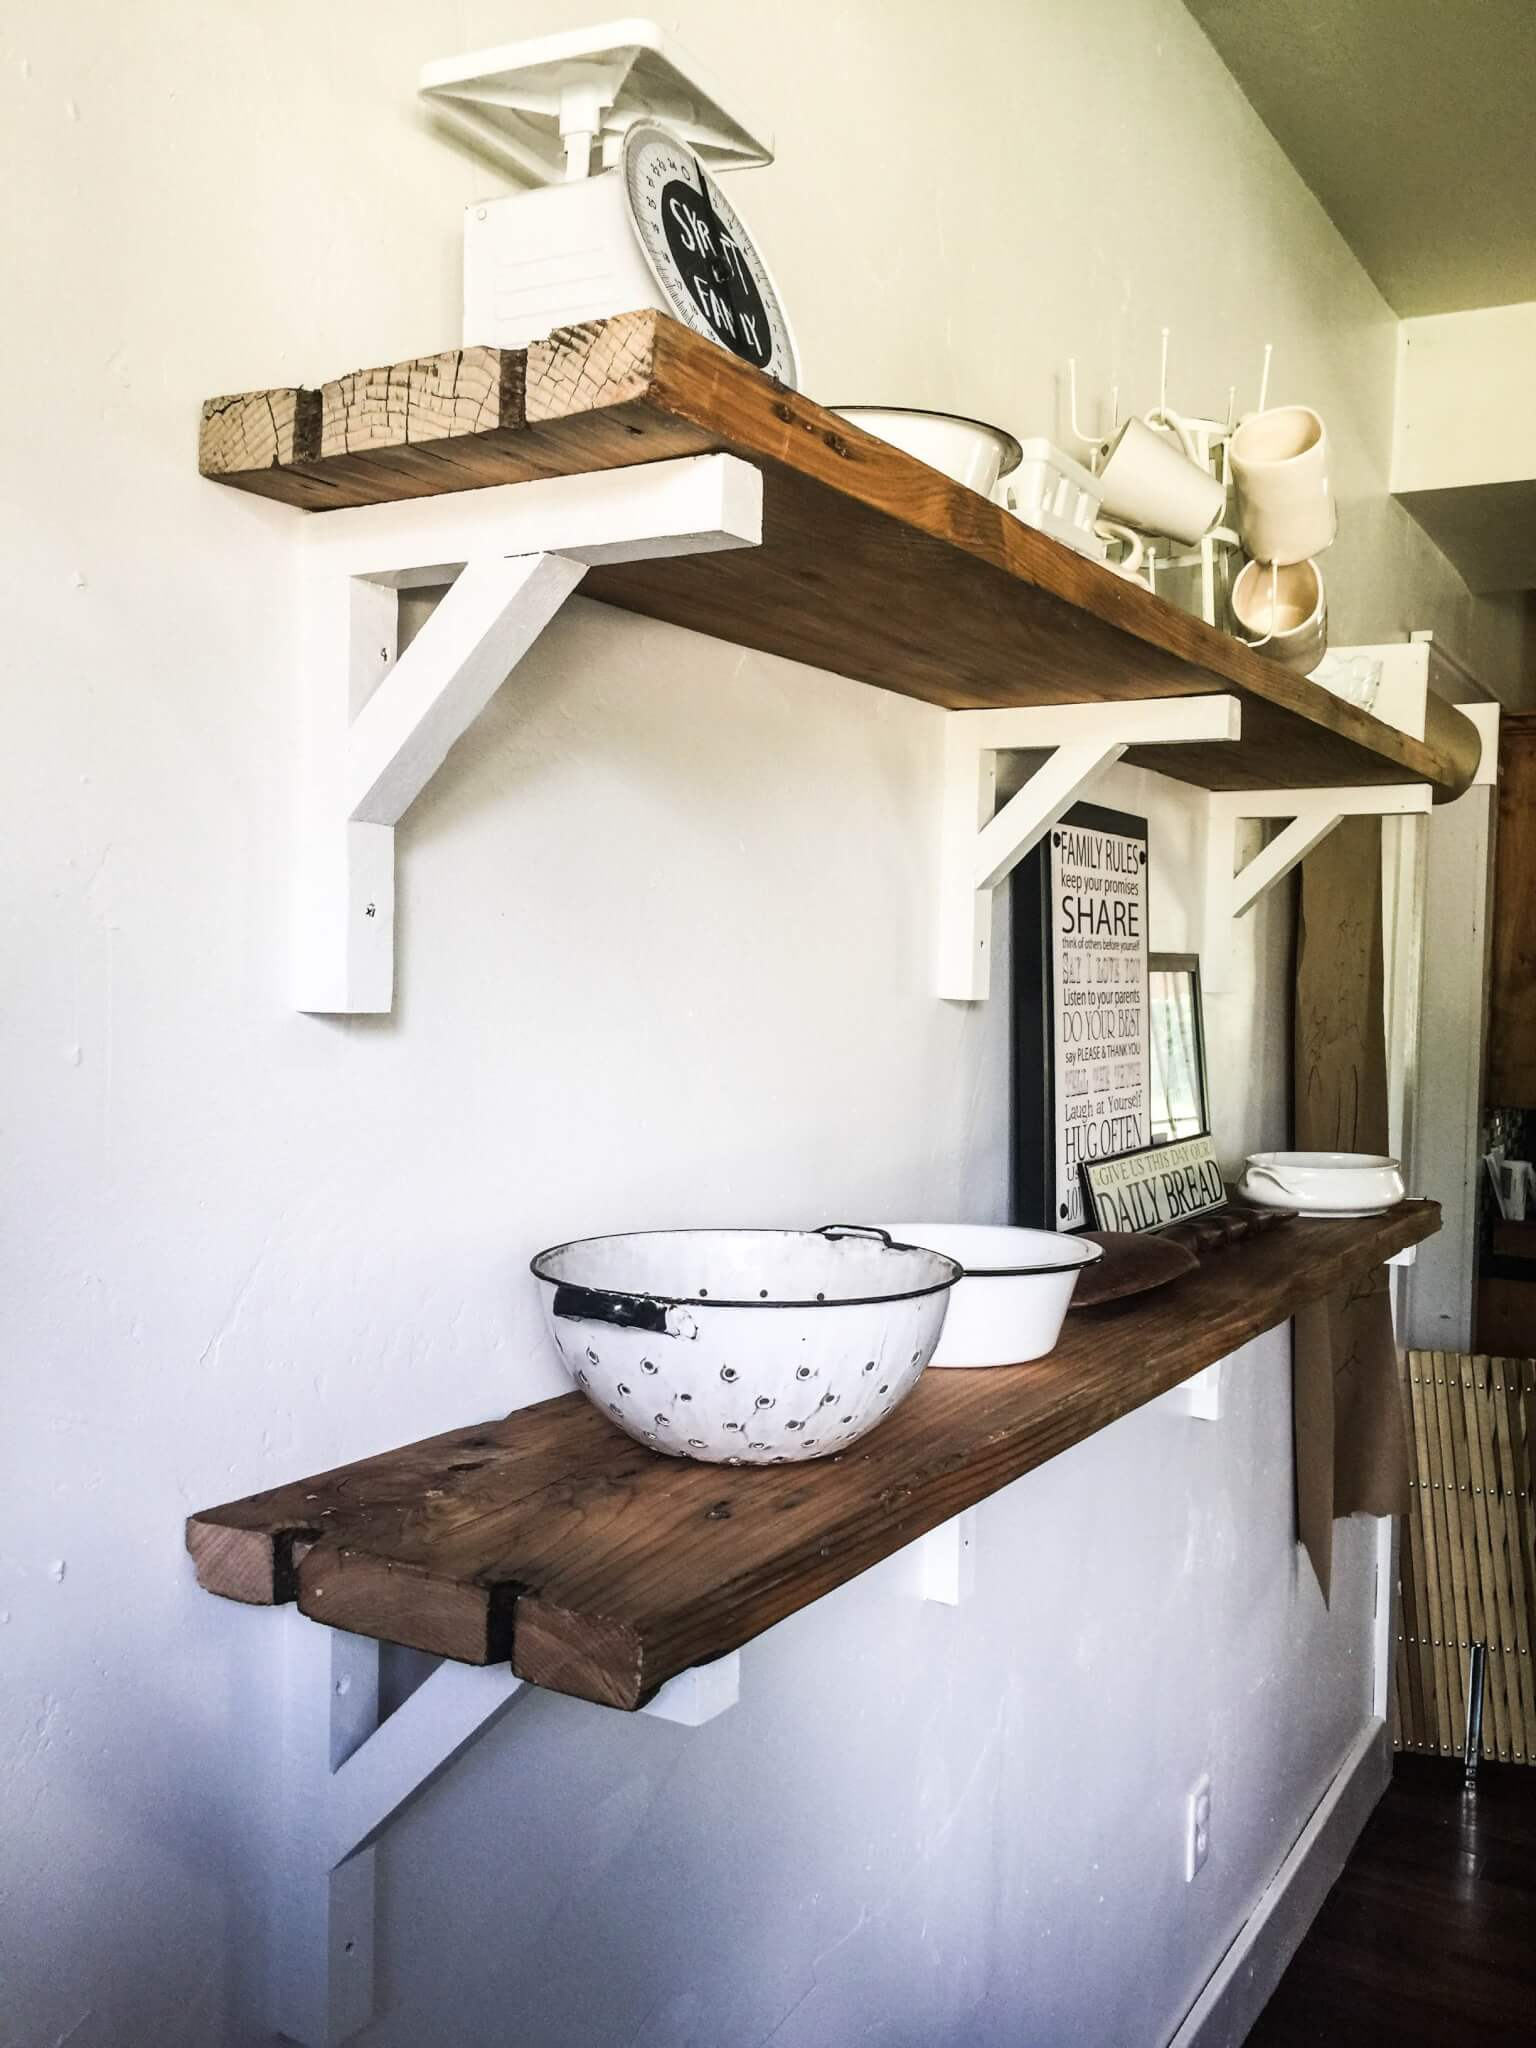 build farmhouse shelves from reclaimed wood